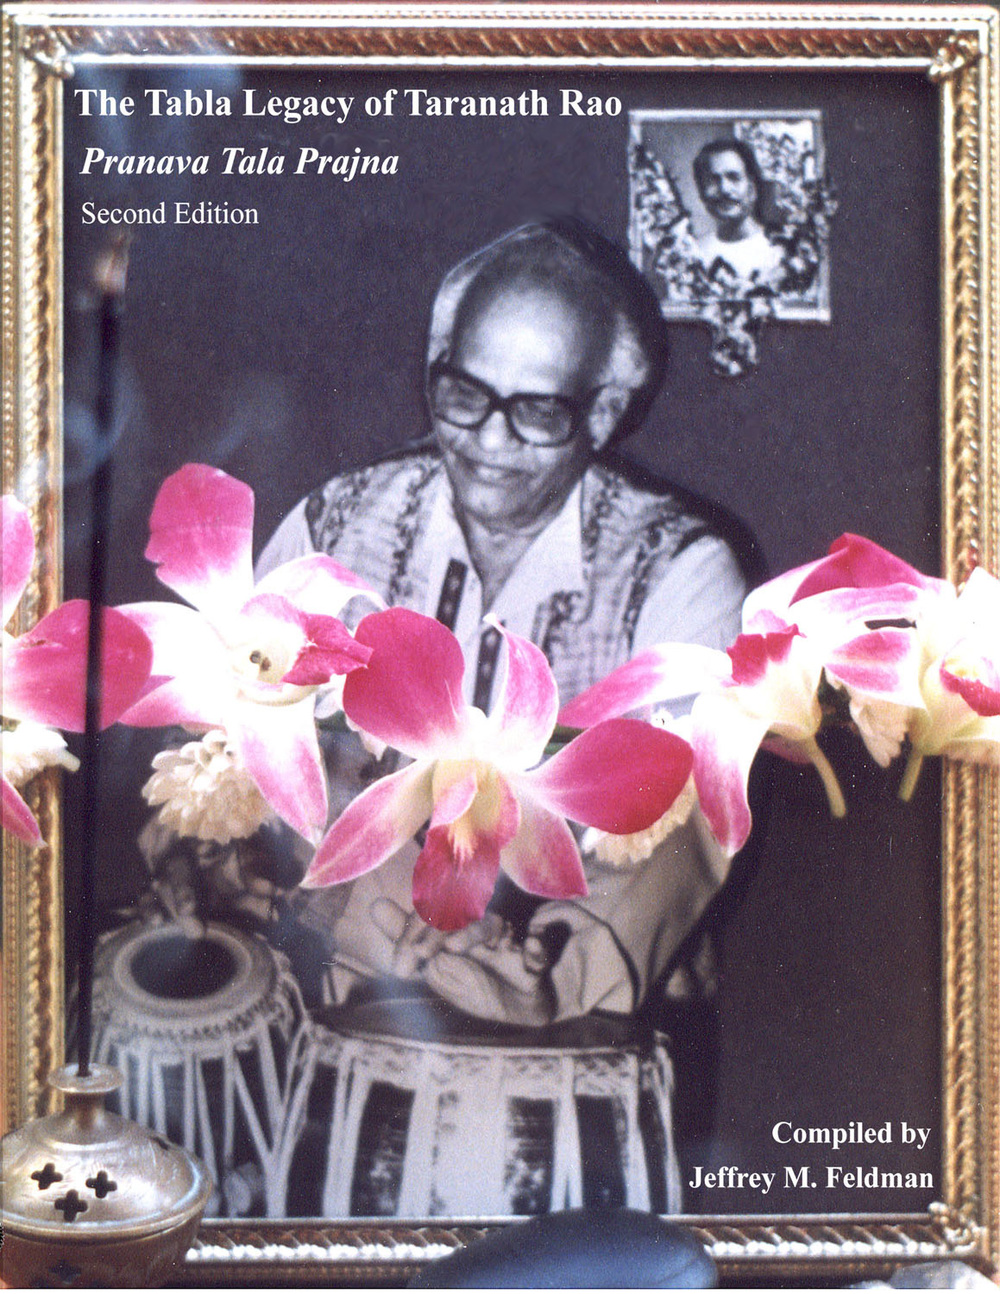 "The Tabla Legacy of Taranath Rao     .     $39.85 + shipping & handling.  8 1/2"" x 11"", 220 pages, perfect binding. Includes audio DVD with mp3 files and      free access to online videos."